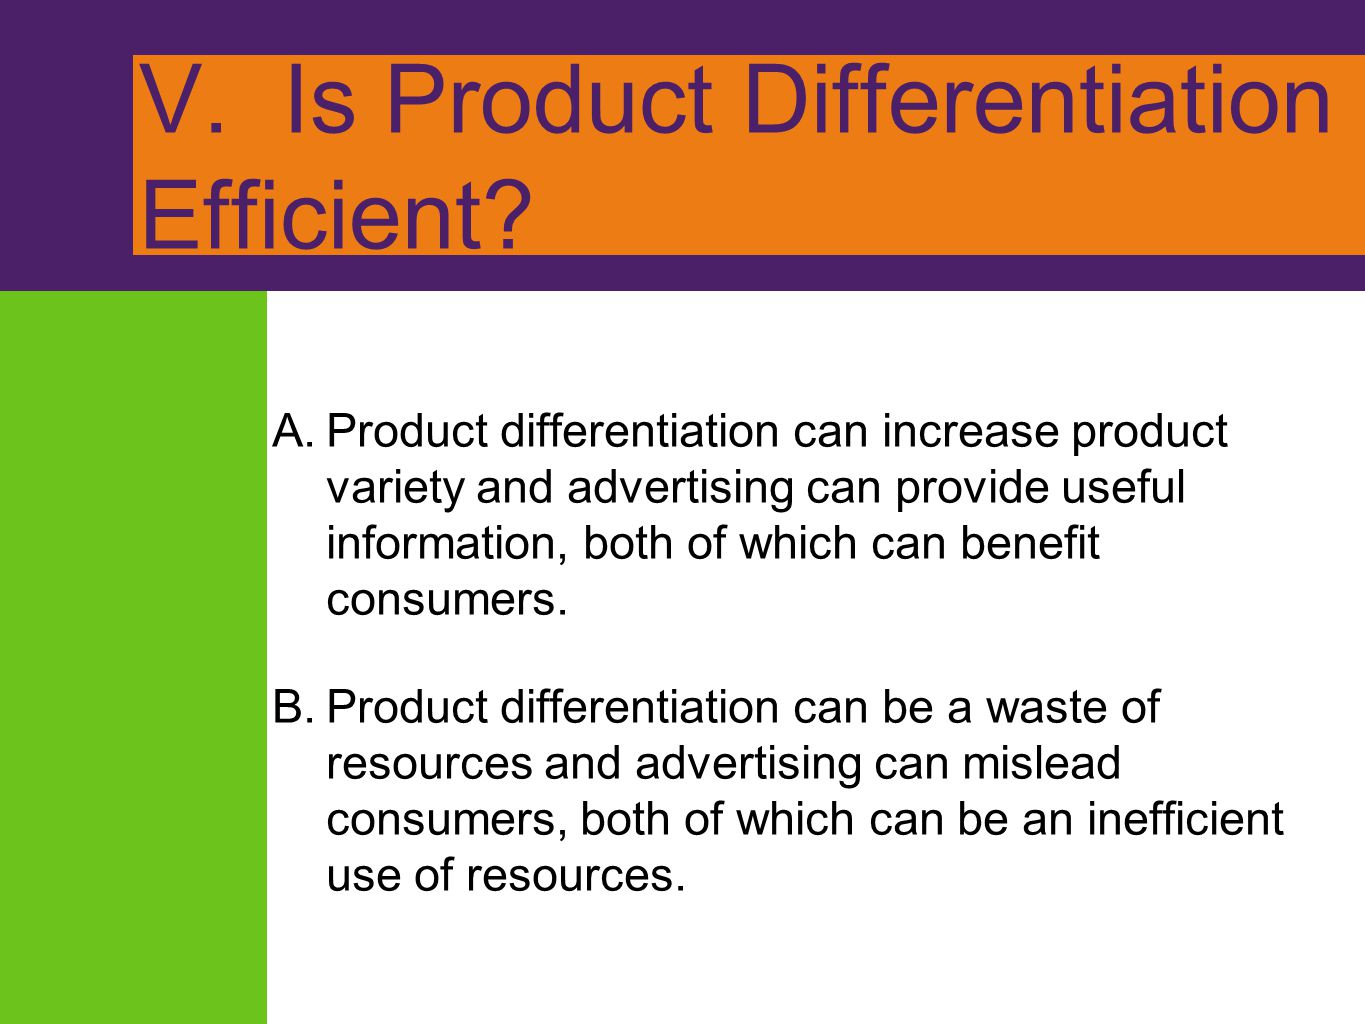 V. Is Product Differentiation Efficient